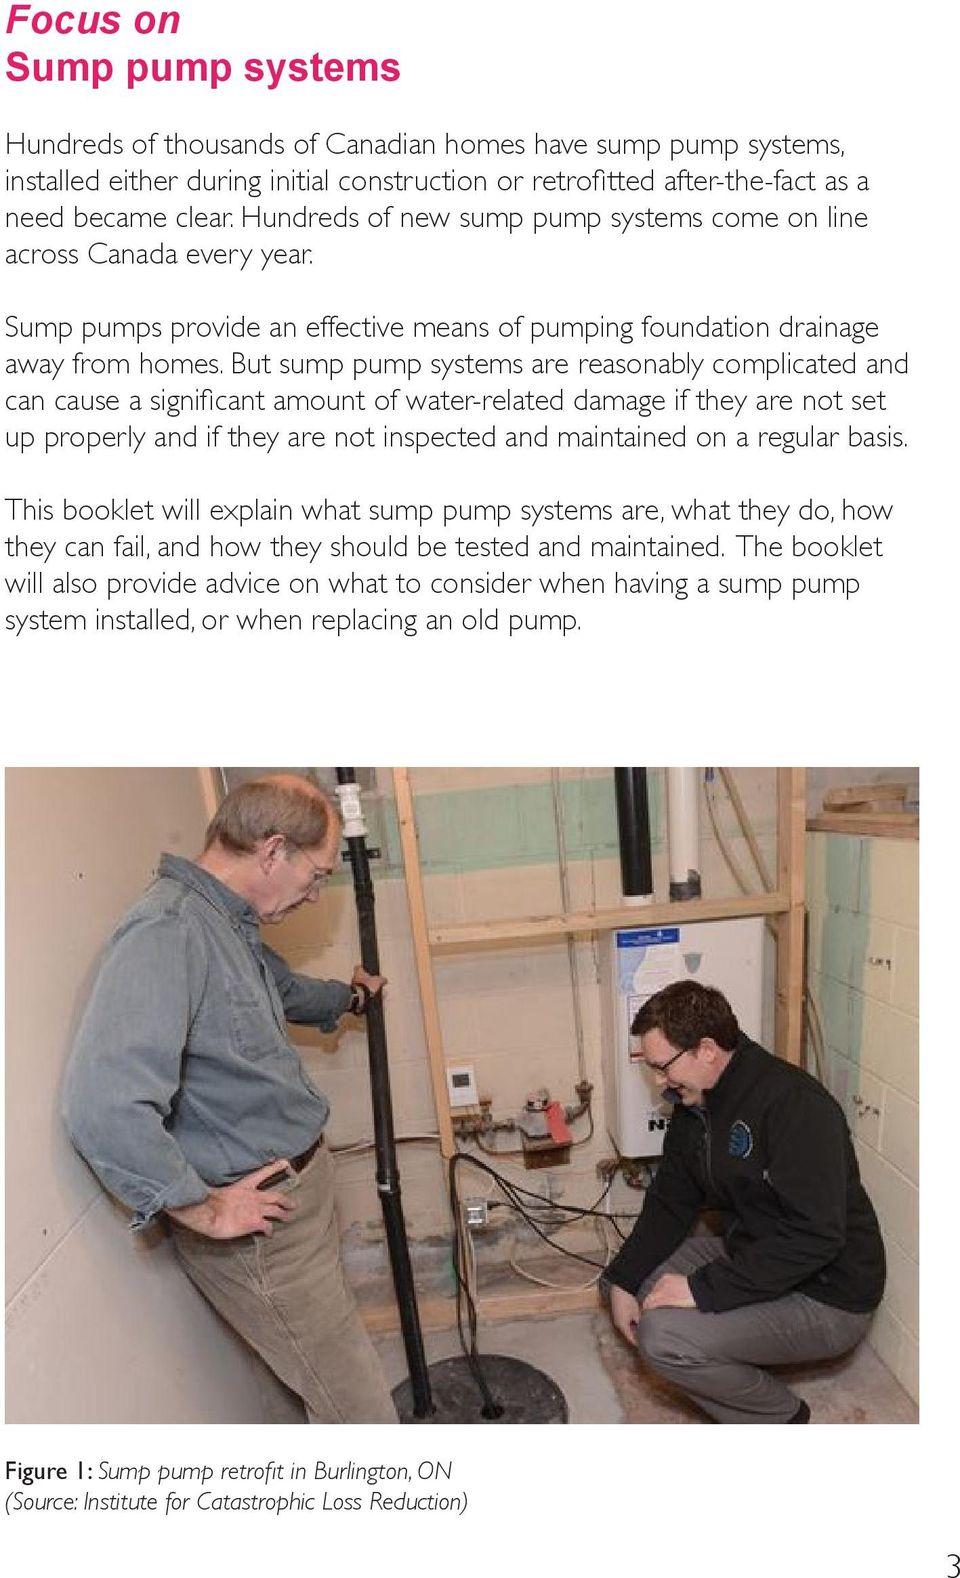 But sump pump systems are reasonably complicated and can cause a significant amount of water-related damage if they are not set up properly and if they are not inspected and maintained on a regular